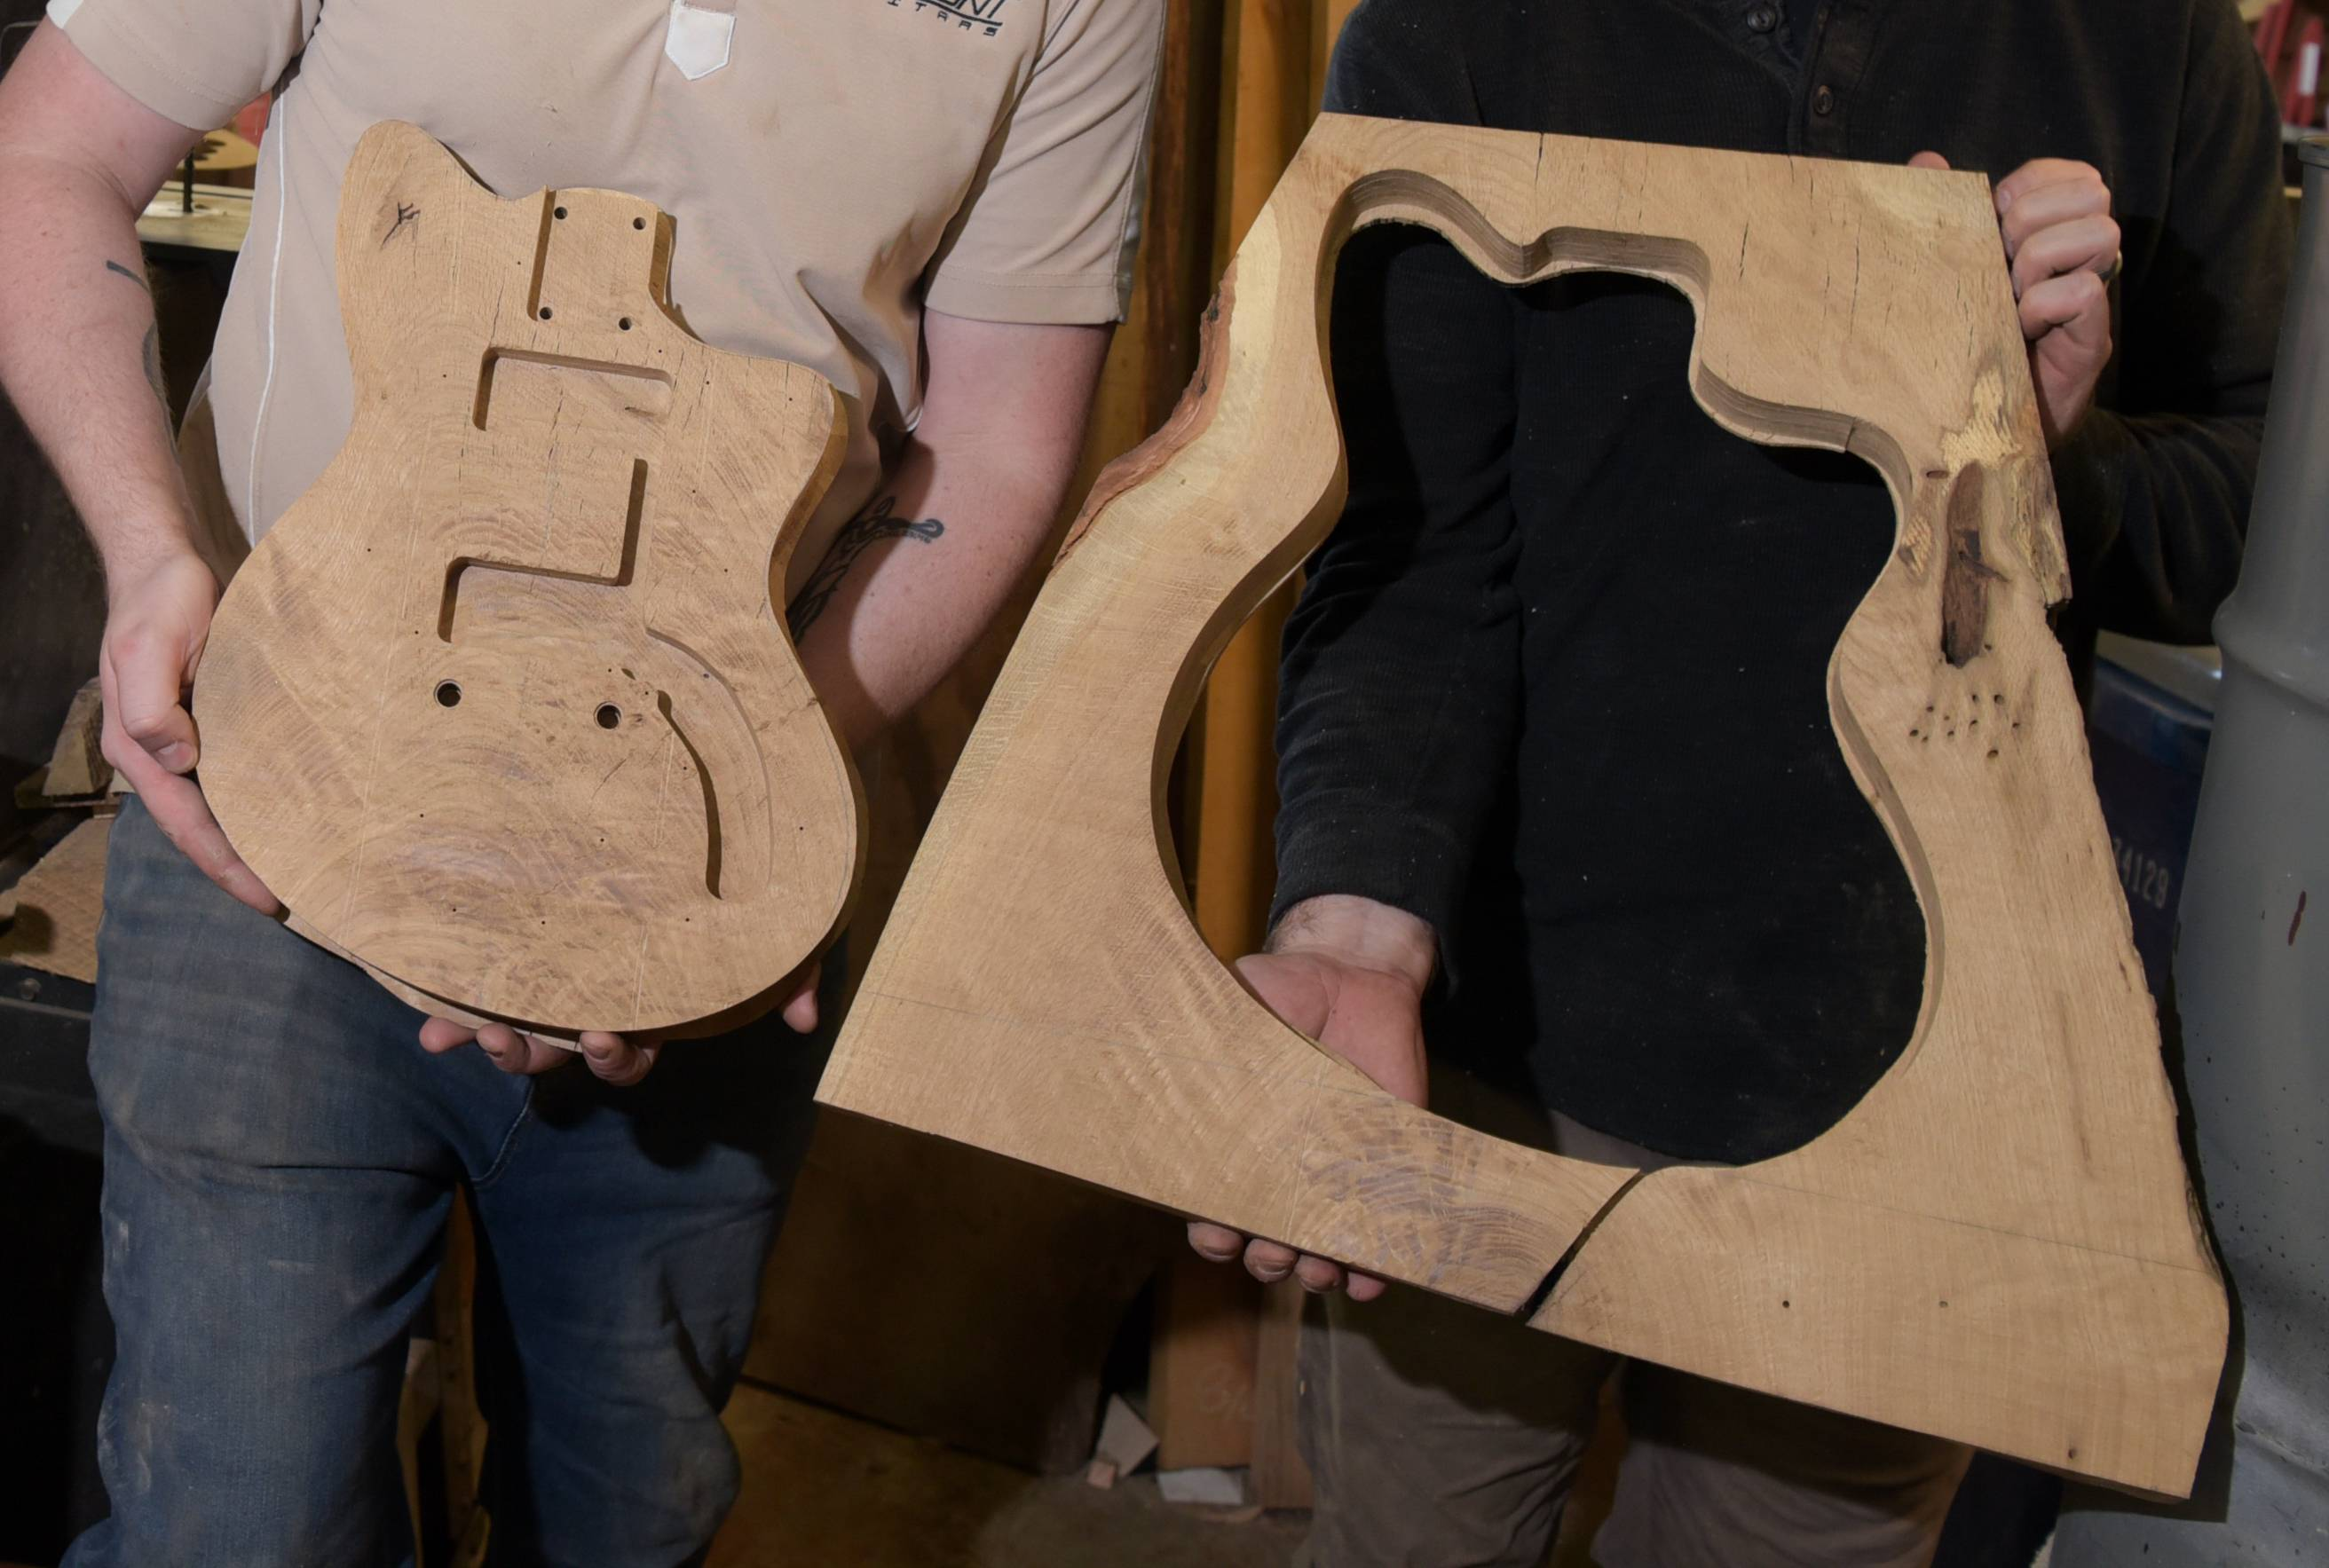 Nate DeMont of DeMont Guitars in Oswego has preserved the cutaway wood from a tree called the Hobson Oak, from which he is fashioning a custom electric instrument that can be auctioned for charity.